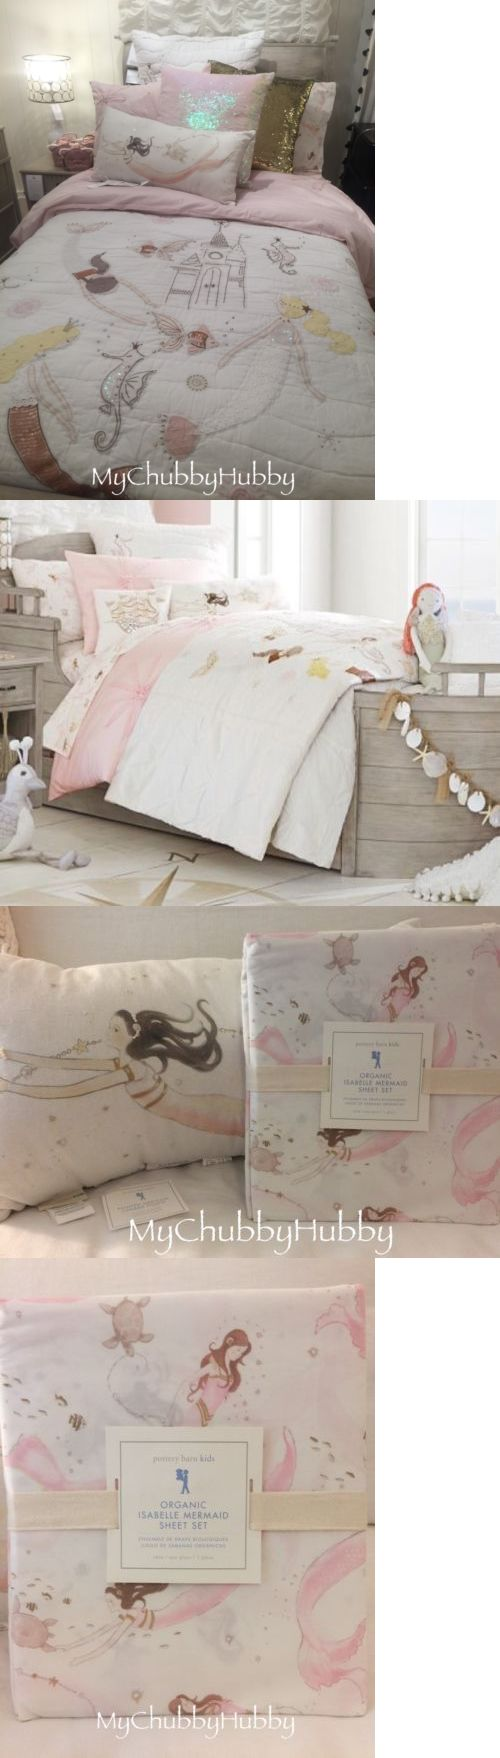 Kids Bedding: Nwt Pottery Barn Kids ~Isabelle Castle~ Twin Quilt Sham Sheets And Mermaid Pillow -> BUY IT NOW ONLY: $482.78 on eBay!